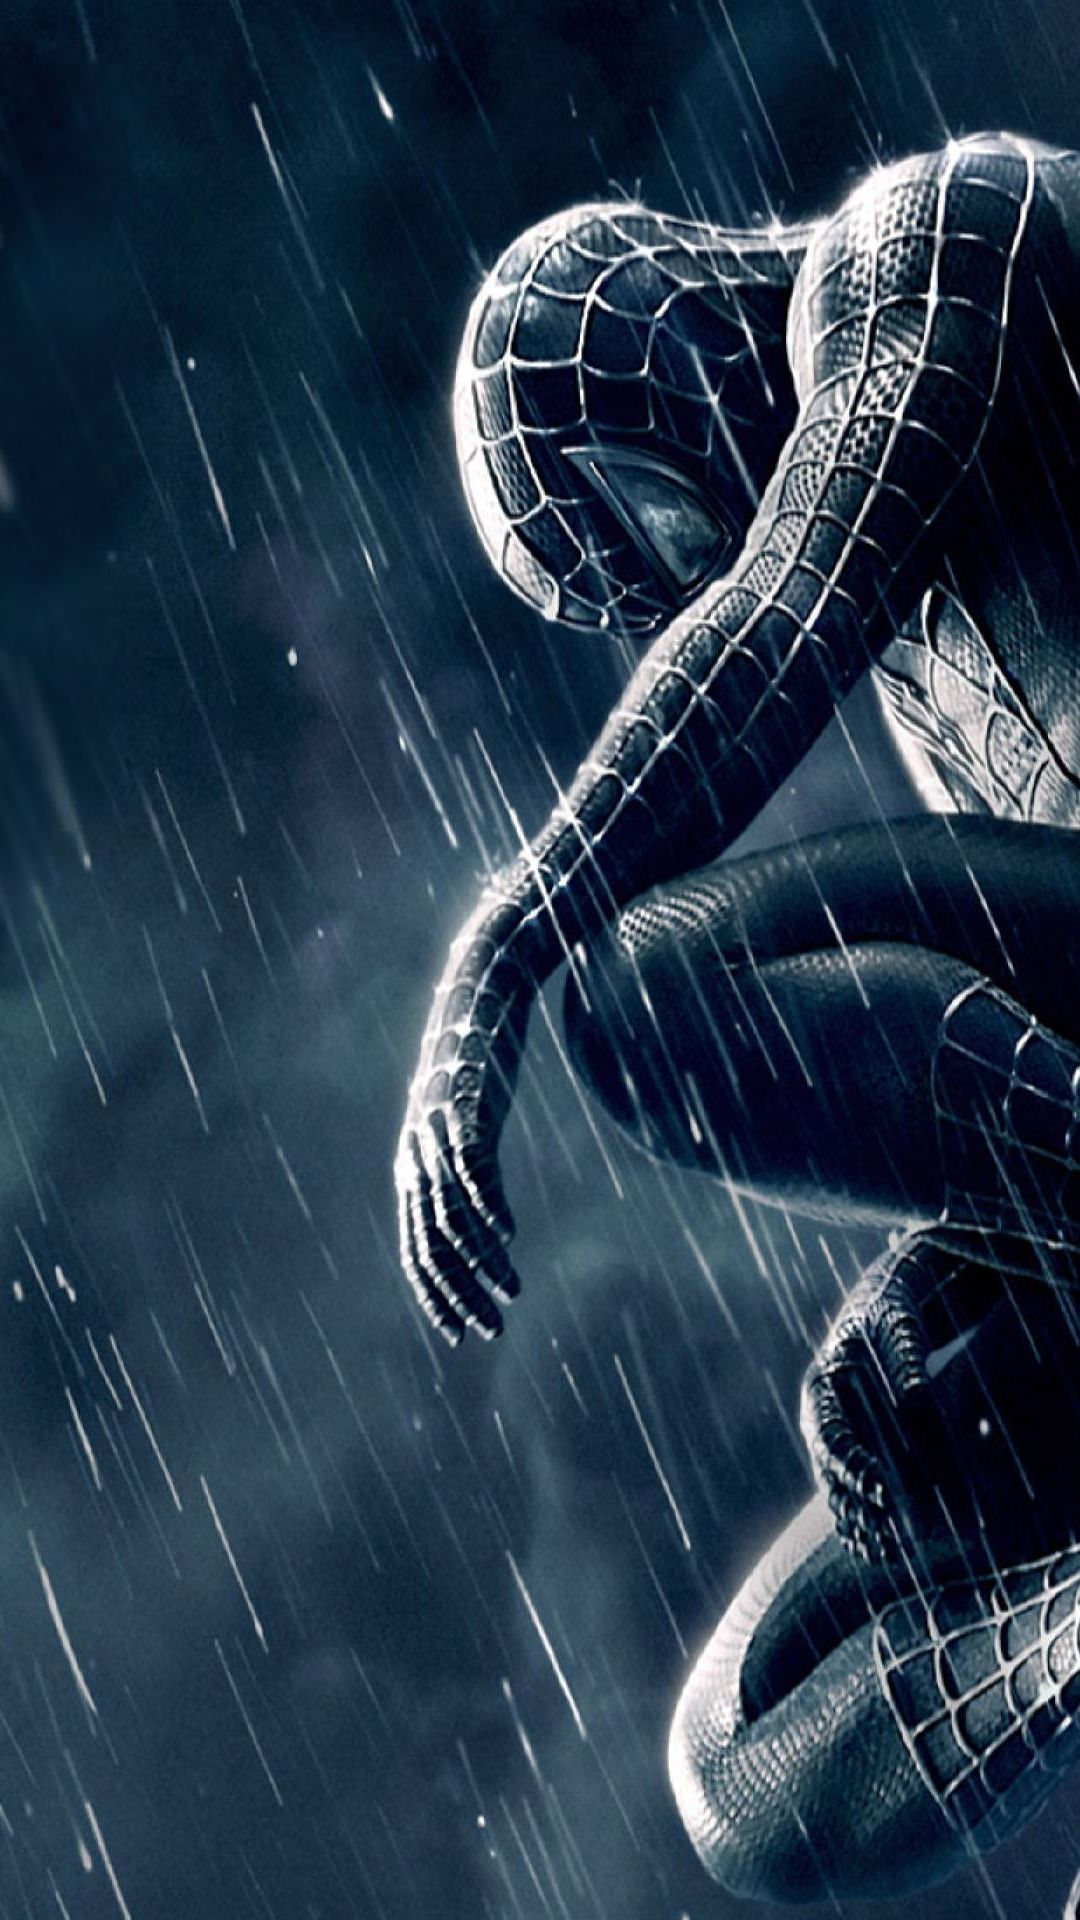 Spiderman 3 Black And Blue Mobile Hd Wallpaper Vactual Papers Laba Laba Mengagumkan Wallpaper Ponsel